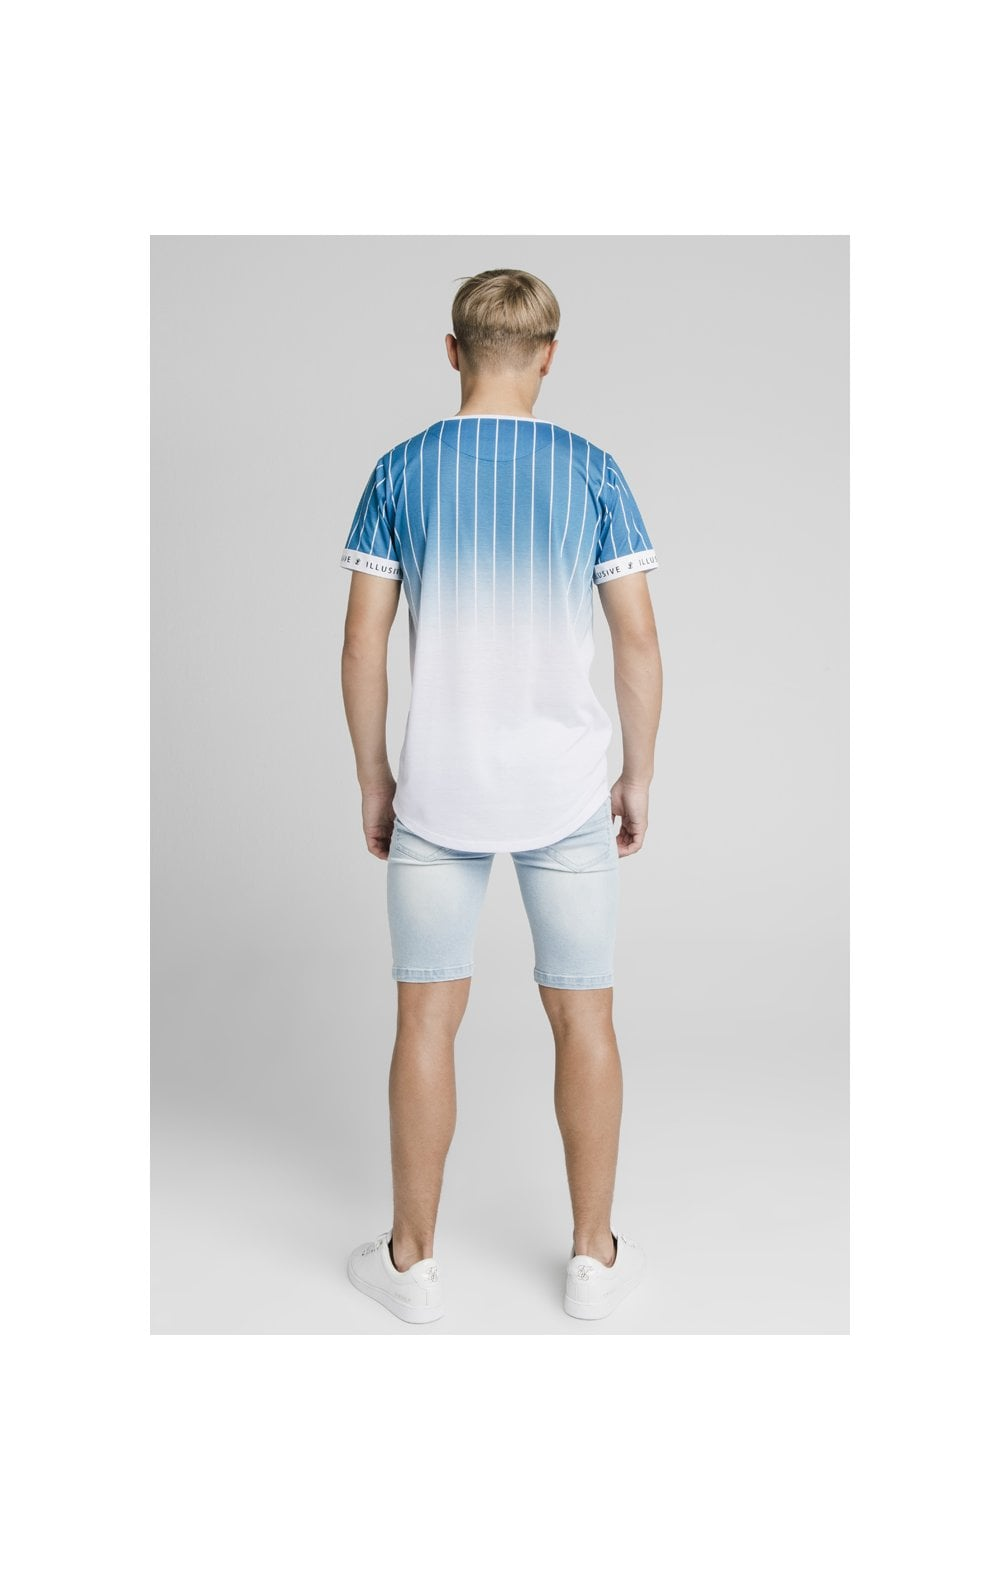 Illusive London Fade Stripe Tech Tee - Teal & White (4)